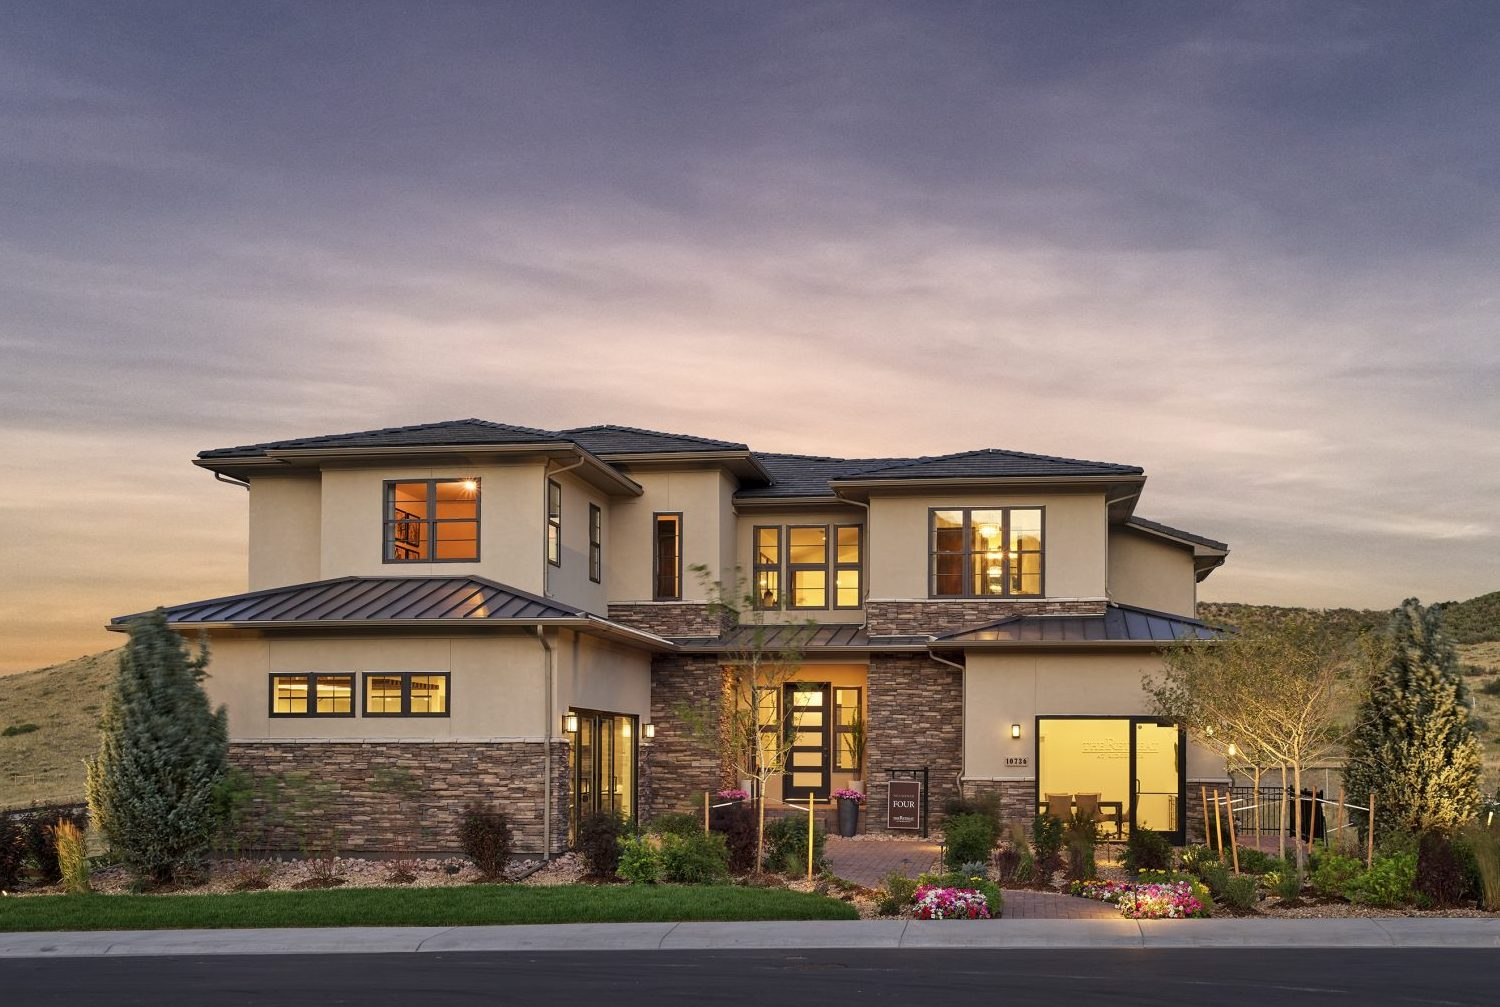 Award winning, single-family home design by Godden Sudik Architects in the Colorado foothills, featuring a modern prairie style with natural stone and stucco.